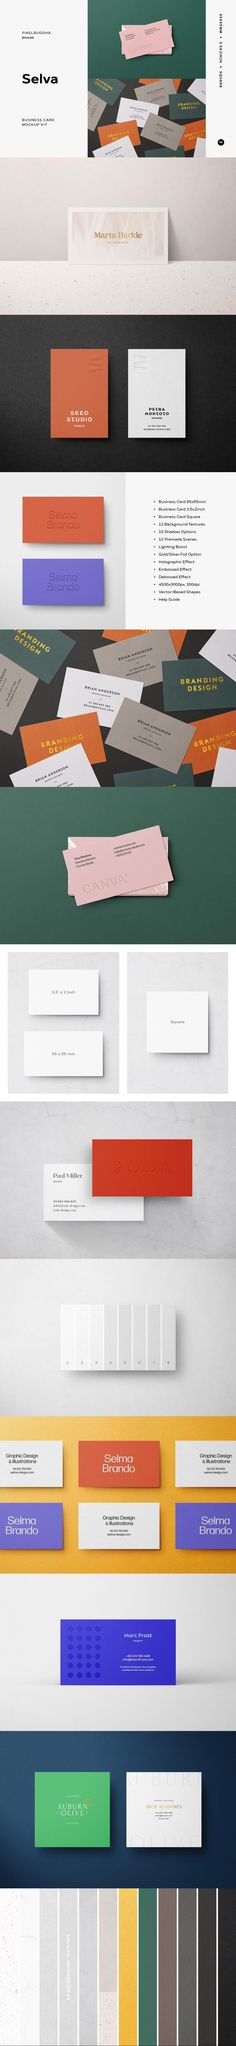 Selva: Business Card Mockup Kit #business #postcard #showcase #station #logo #town #mockup #embossed #TemplateDesign #creator #grunge #mockup #psd #design #paste #card #tropical #boxes #pat Plastic Texture, Postcard Template, Shadow Play, Three Words, Business Card Mock Up, Mockup Templates, Corporate Identity, Paper Texture, Textured Background